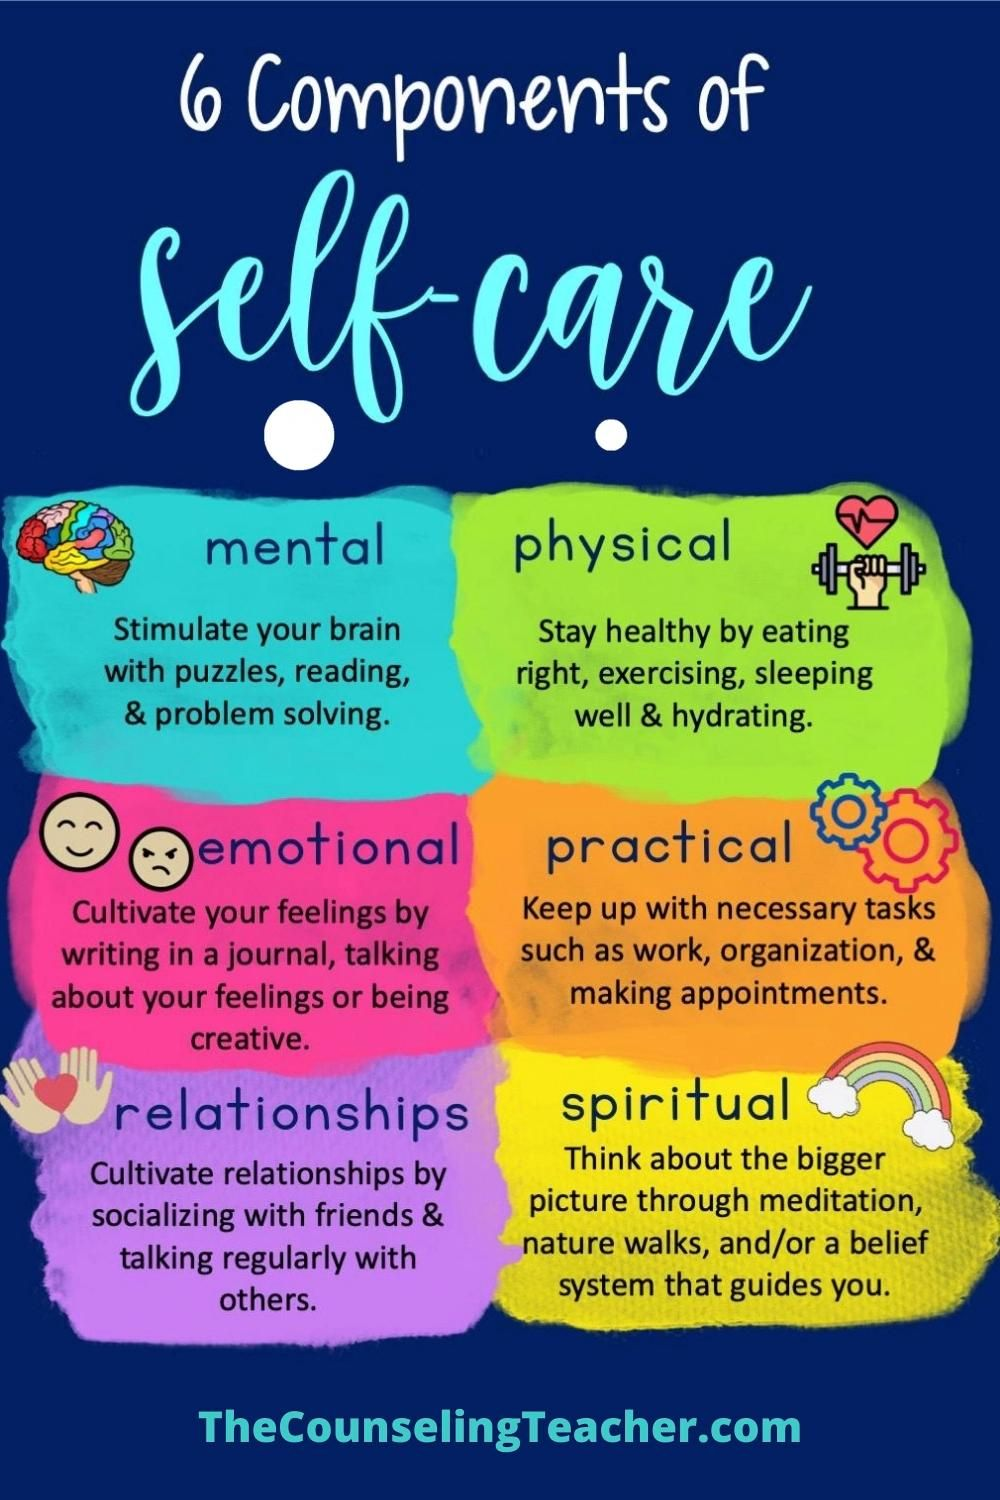 Self Care for Teachers and Students